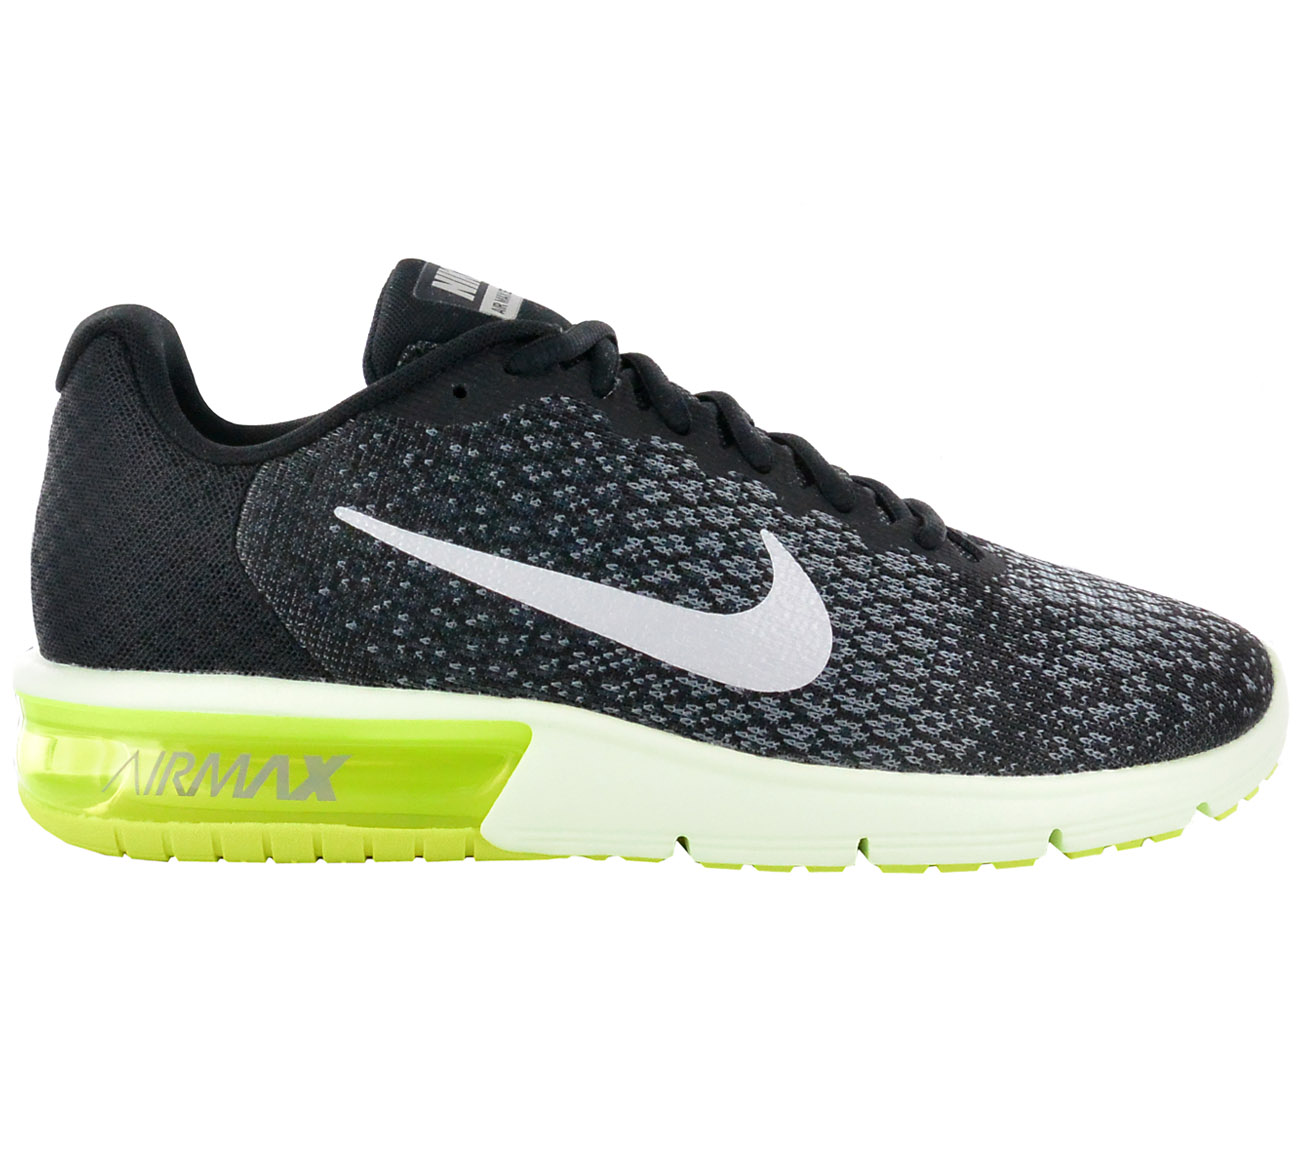 the best attitude fabcc 07f2e Nike Men s Sneakers Air Max Sequent 2 Shoes Black Sneakers Leisure ...